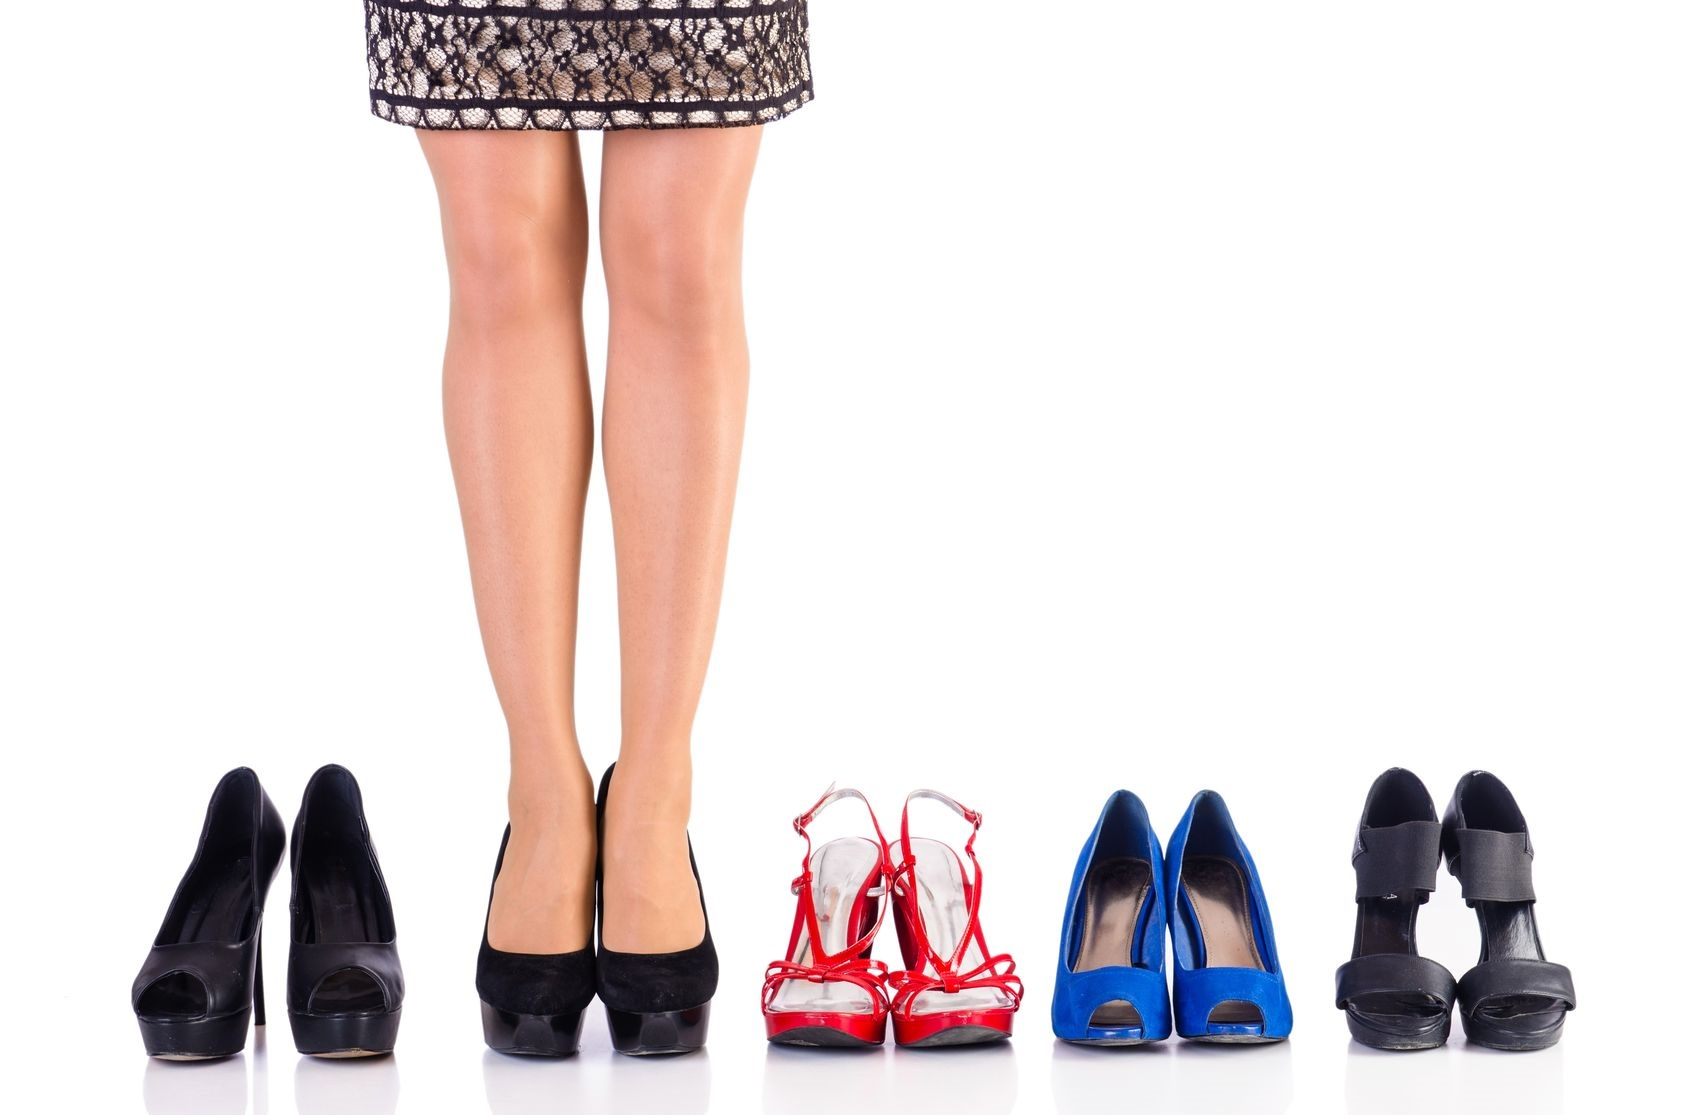 18481505_L_High Heels_Shoes_Blue Shoes_Red Shoes_Black Shoes_Legs.jpg